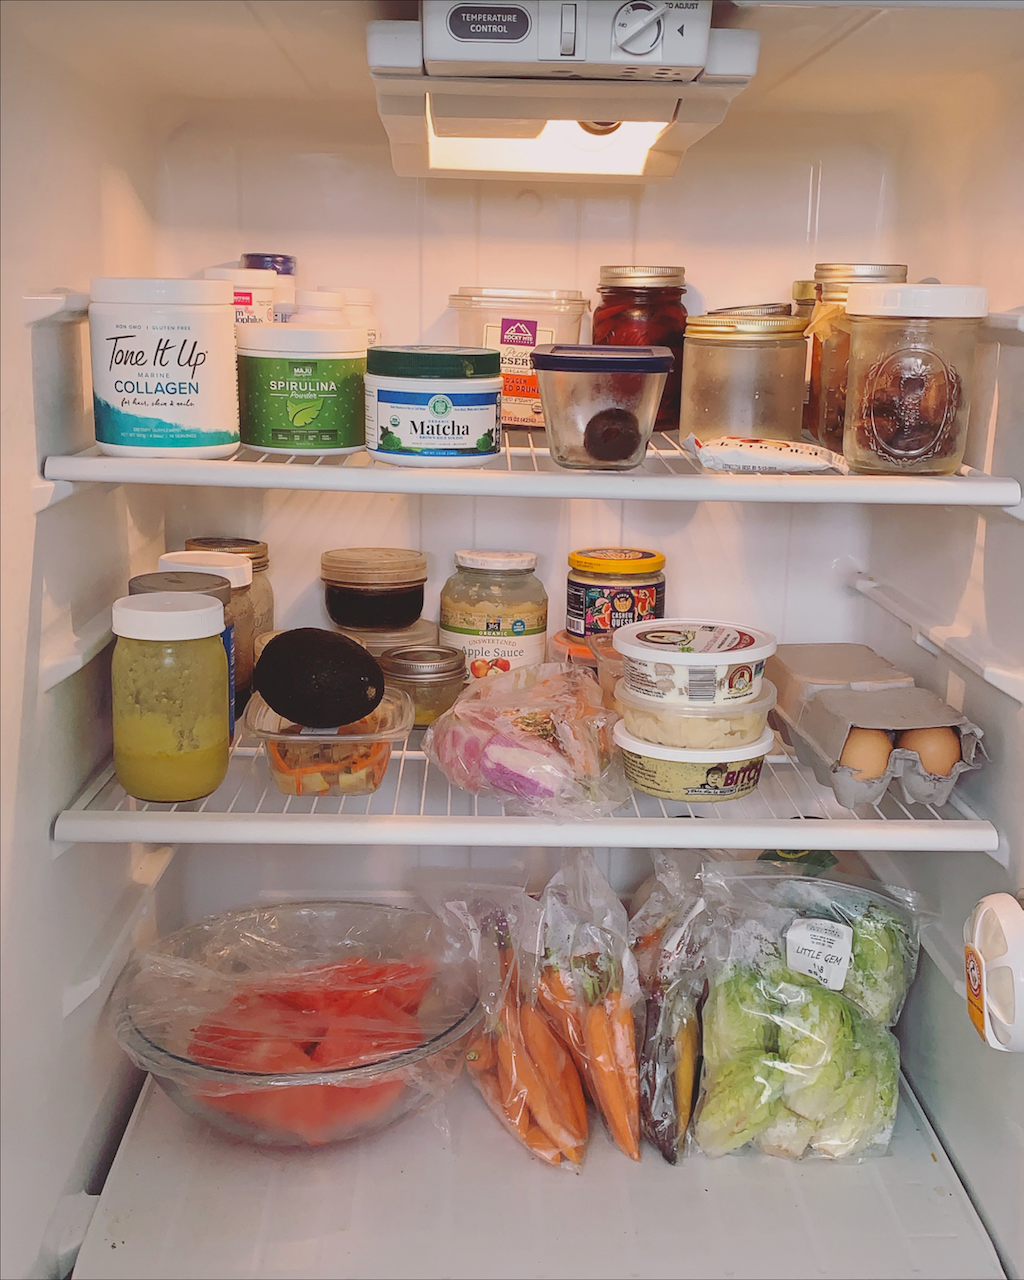 refrigerator with stocked foods from the grocery store like matcha, collagen, and fresh produce